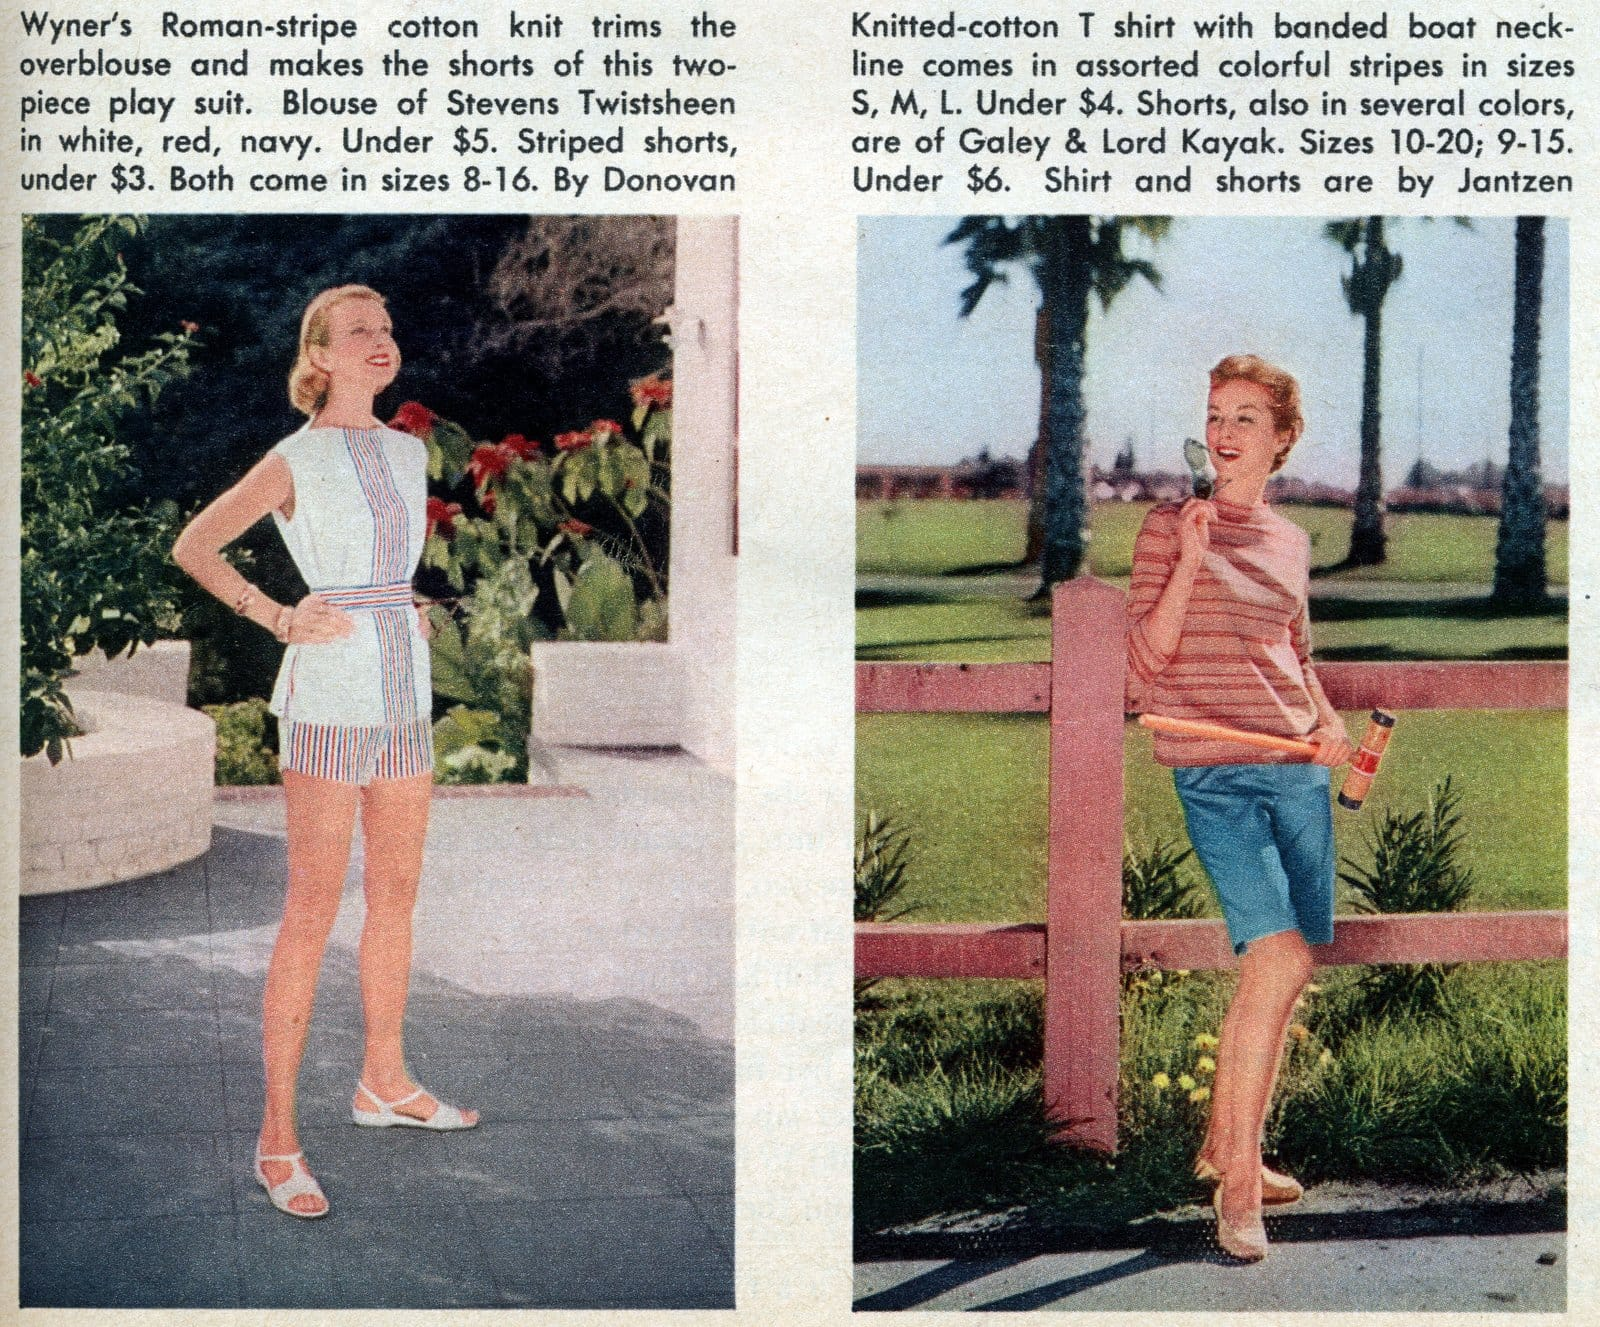 Vintage fun-in-the-sun fashions Summer playwear from the 1950s